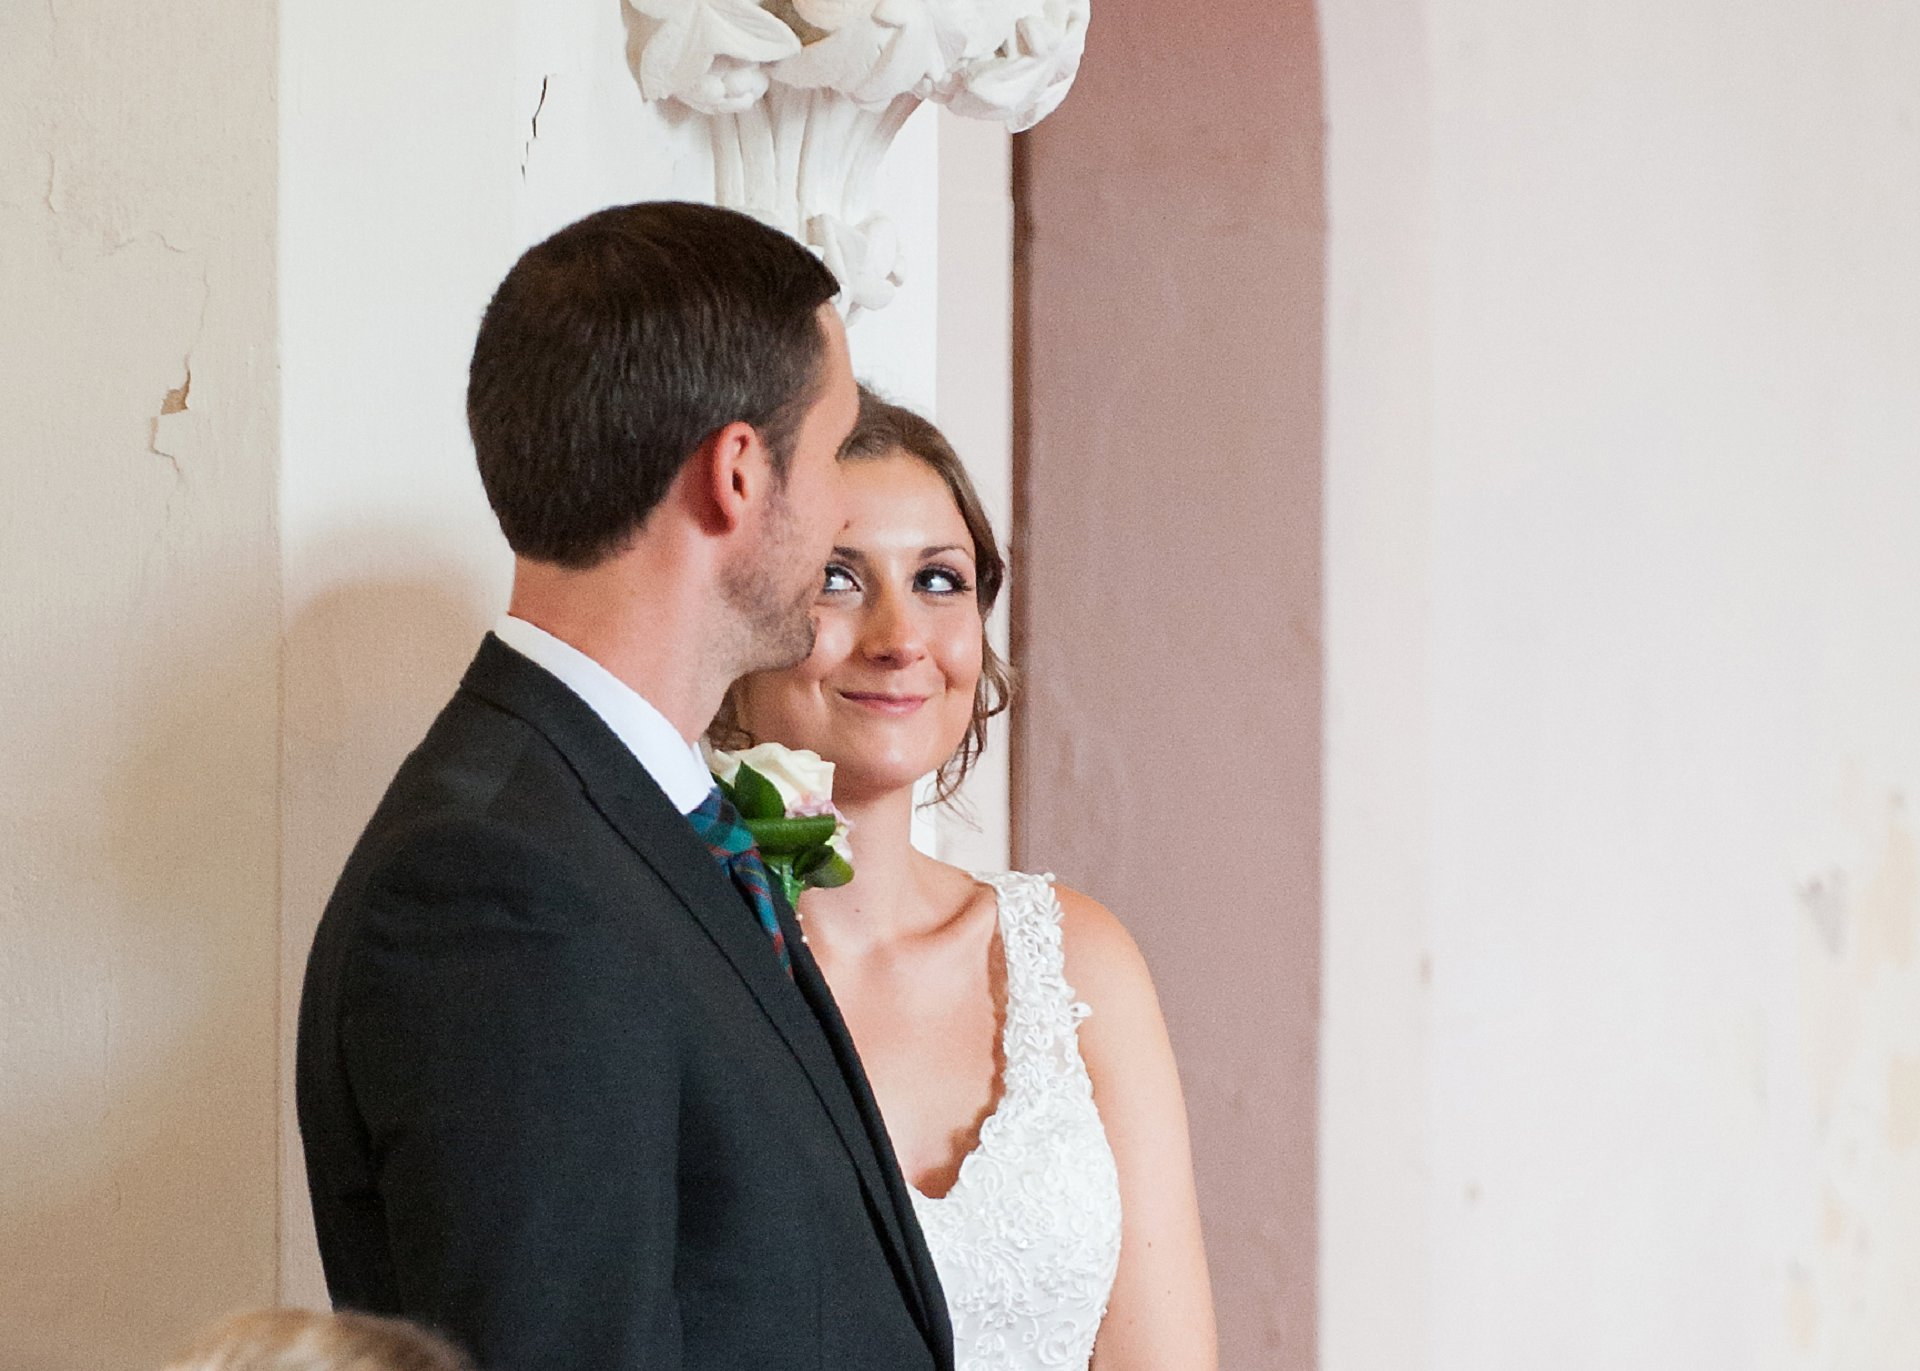 Bride, Sarah, smiles at her groom, Brady, during the wedding blessing service at St Peter's Ditton